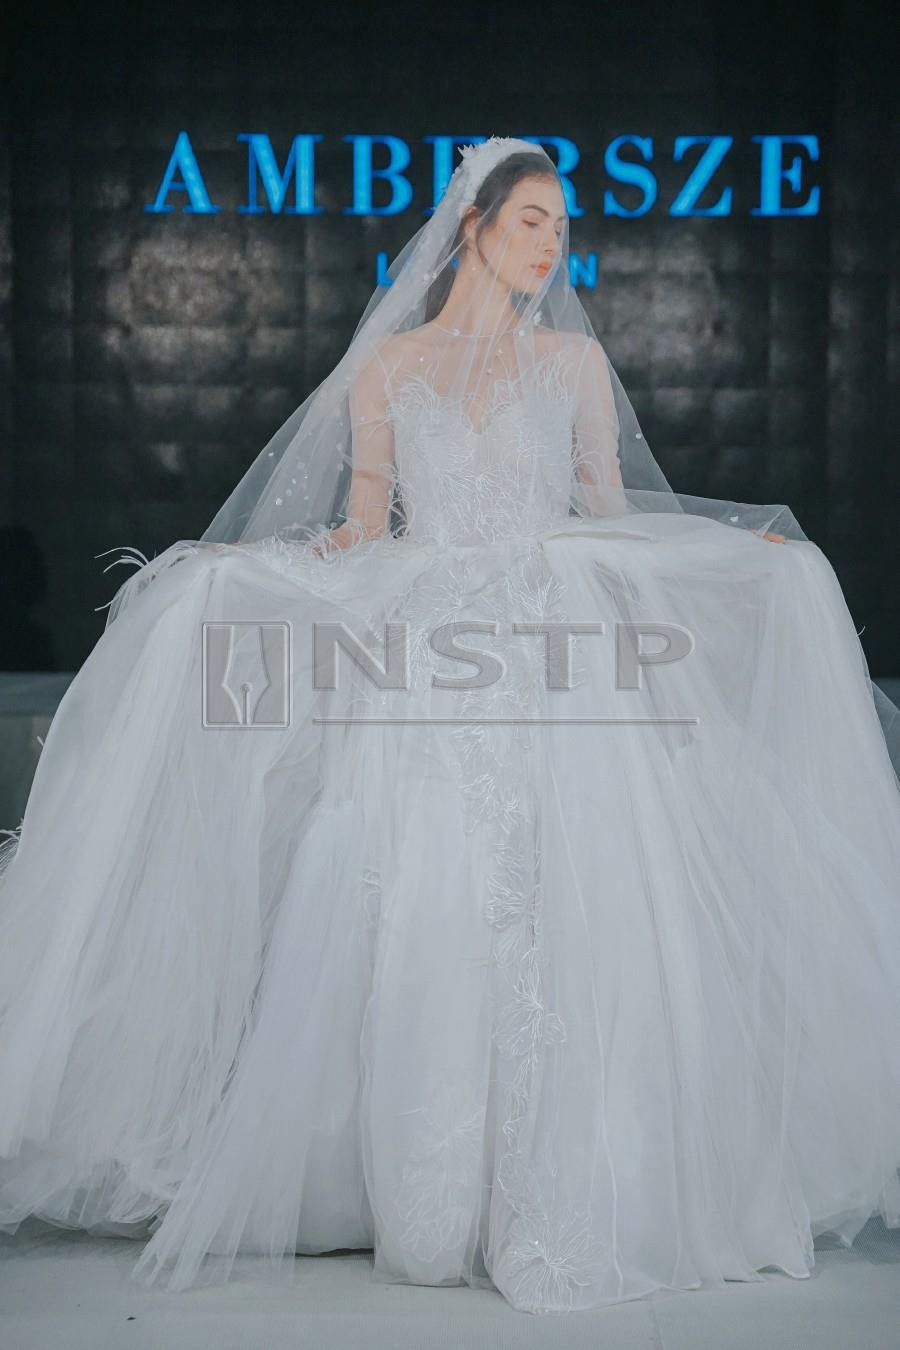 Wedding Dress Embroidery Patterns Ode To The Bride New Straits Times Malaysia General Business